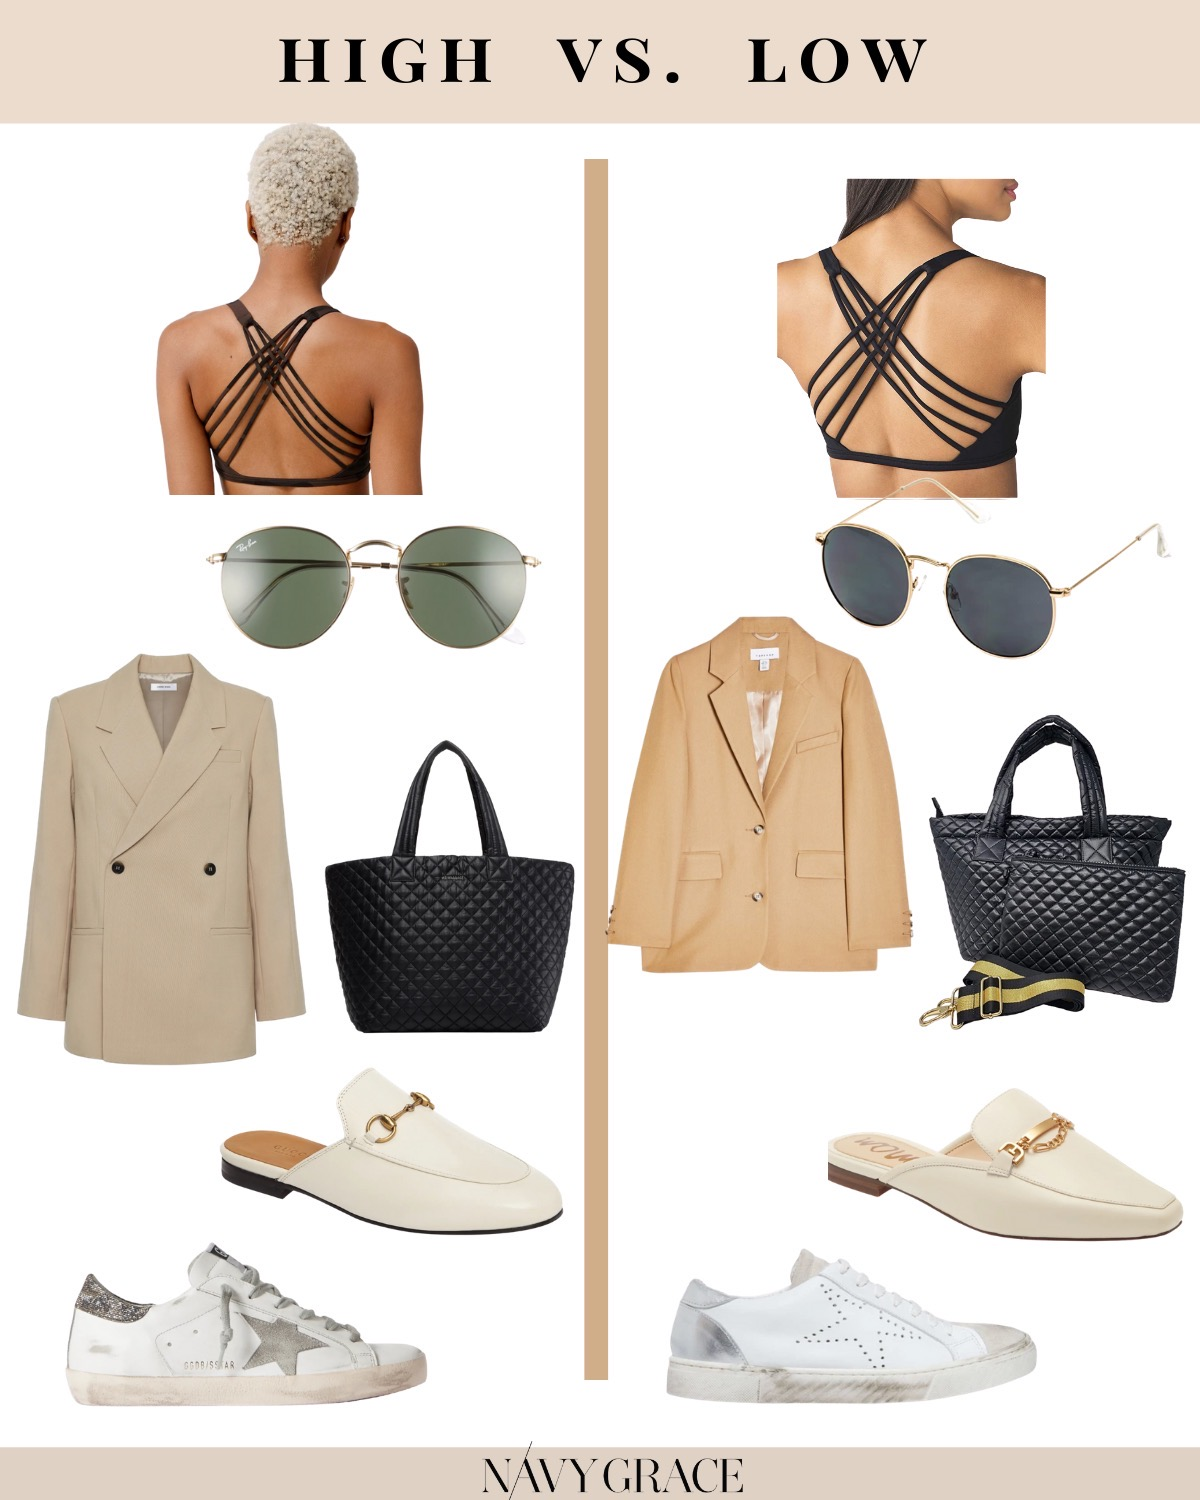 Fashion Tips by popular San Diego fashion blog, Navy Grace: collage image of a Nordstrom Single Breasted Girlfriend Blazer TOPSHOP, Nordstrom Chicago Ripped Knee High Waist Dad Jeans TOPSHOP, Everlane The Air Oversized Crew Tee, Nordstrom Princetown Loafer Mule, Nordstrom Icons 50mm Round Metal Sunglasses RAY-BAN, black sports bra, Golden Goose Sneakers, and quilted black purse.